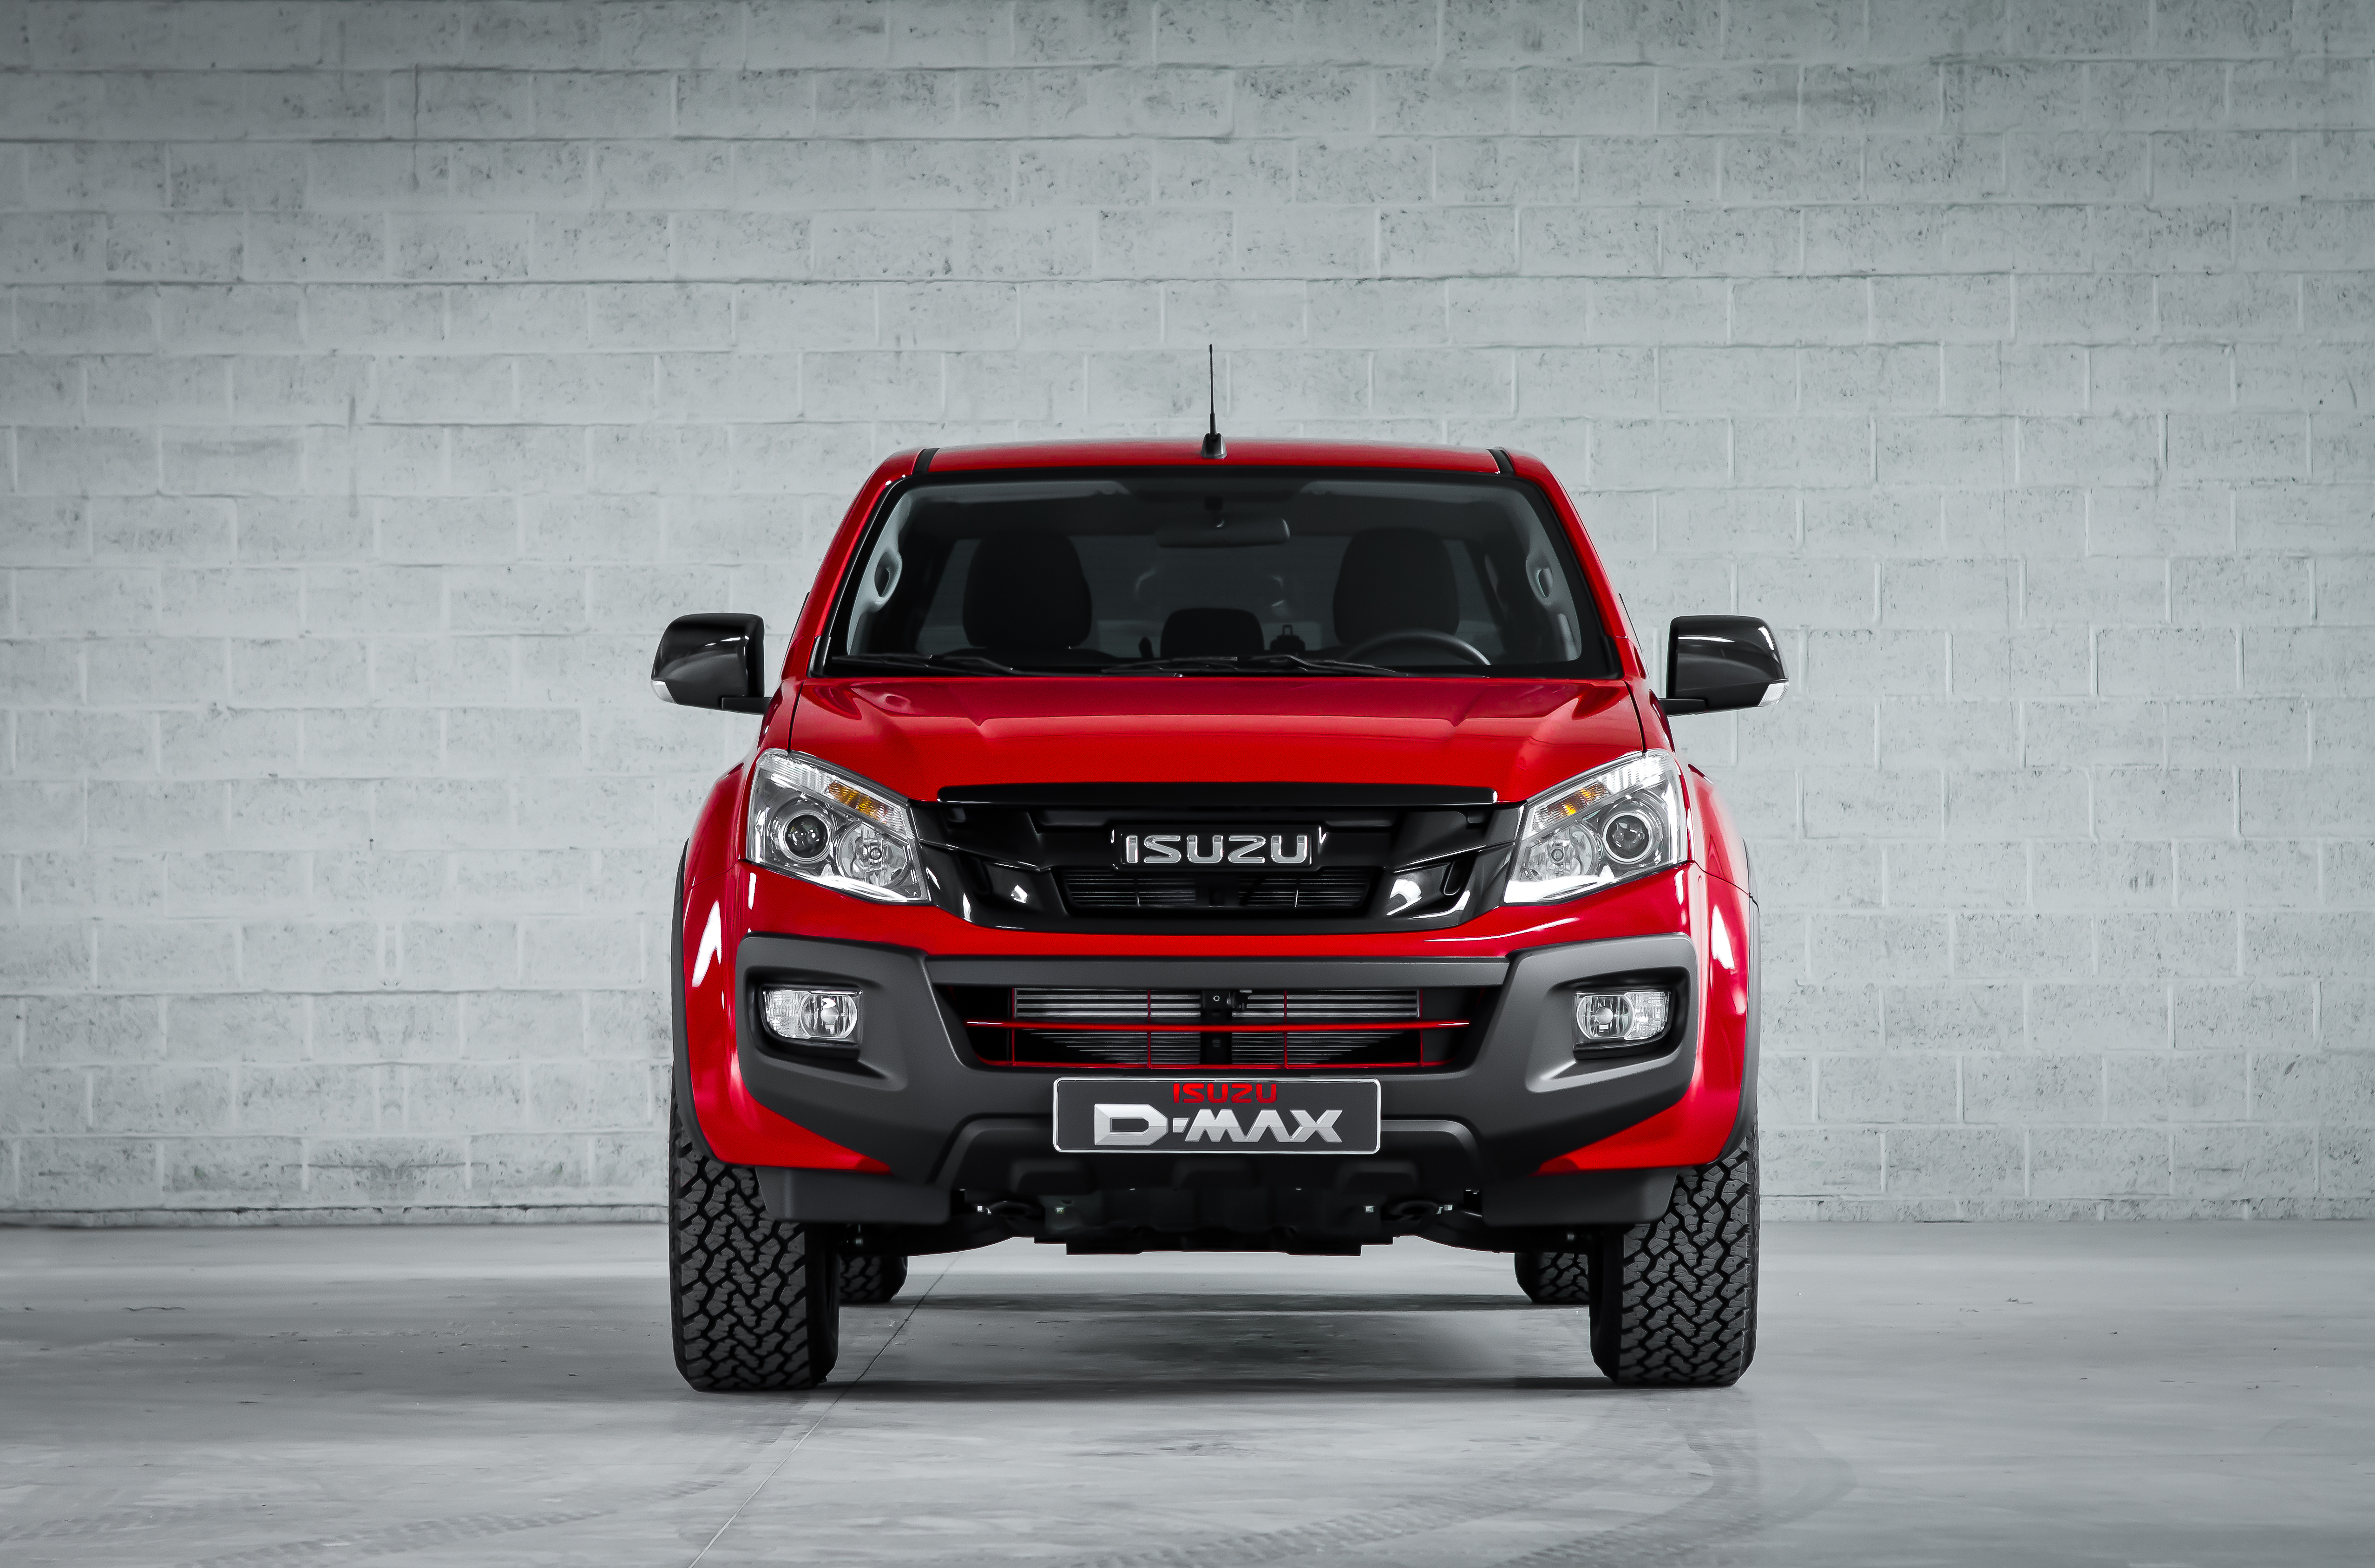 d max fury happy birthday isuzu link2fleet for a smarter mobility. Black Bedroom Furniture Sets. Home Design Ideas